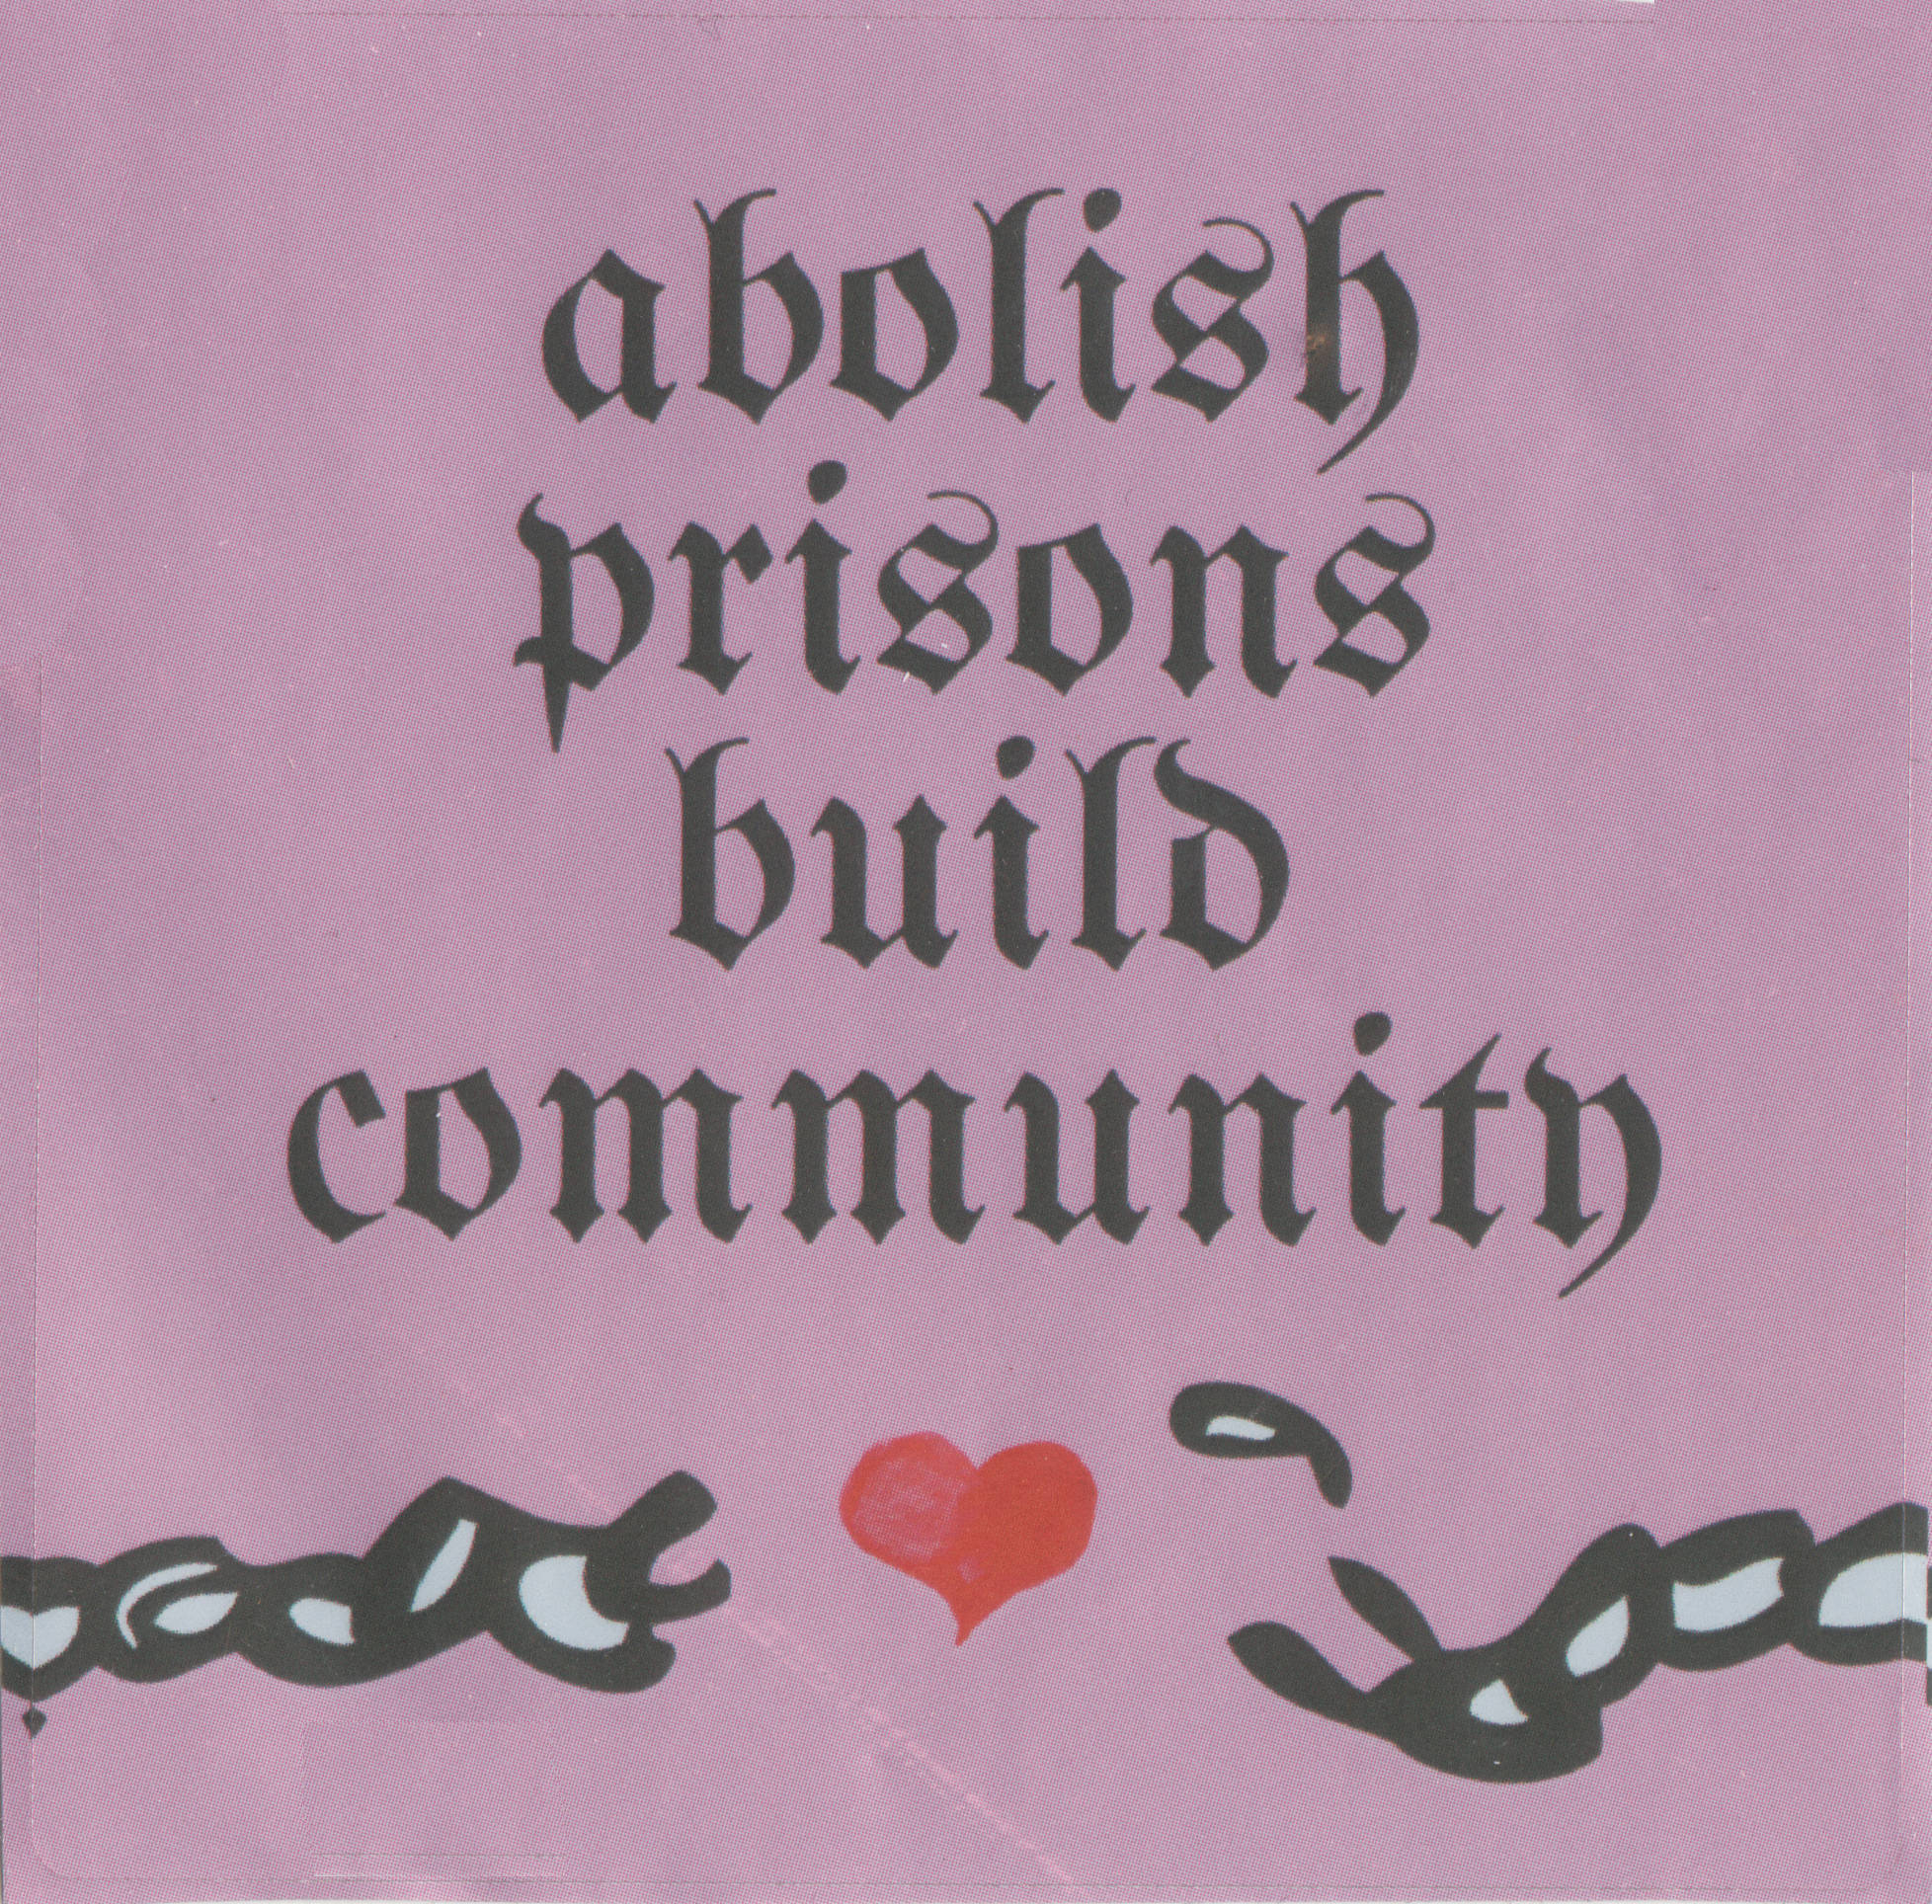 abolish prisons, build community